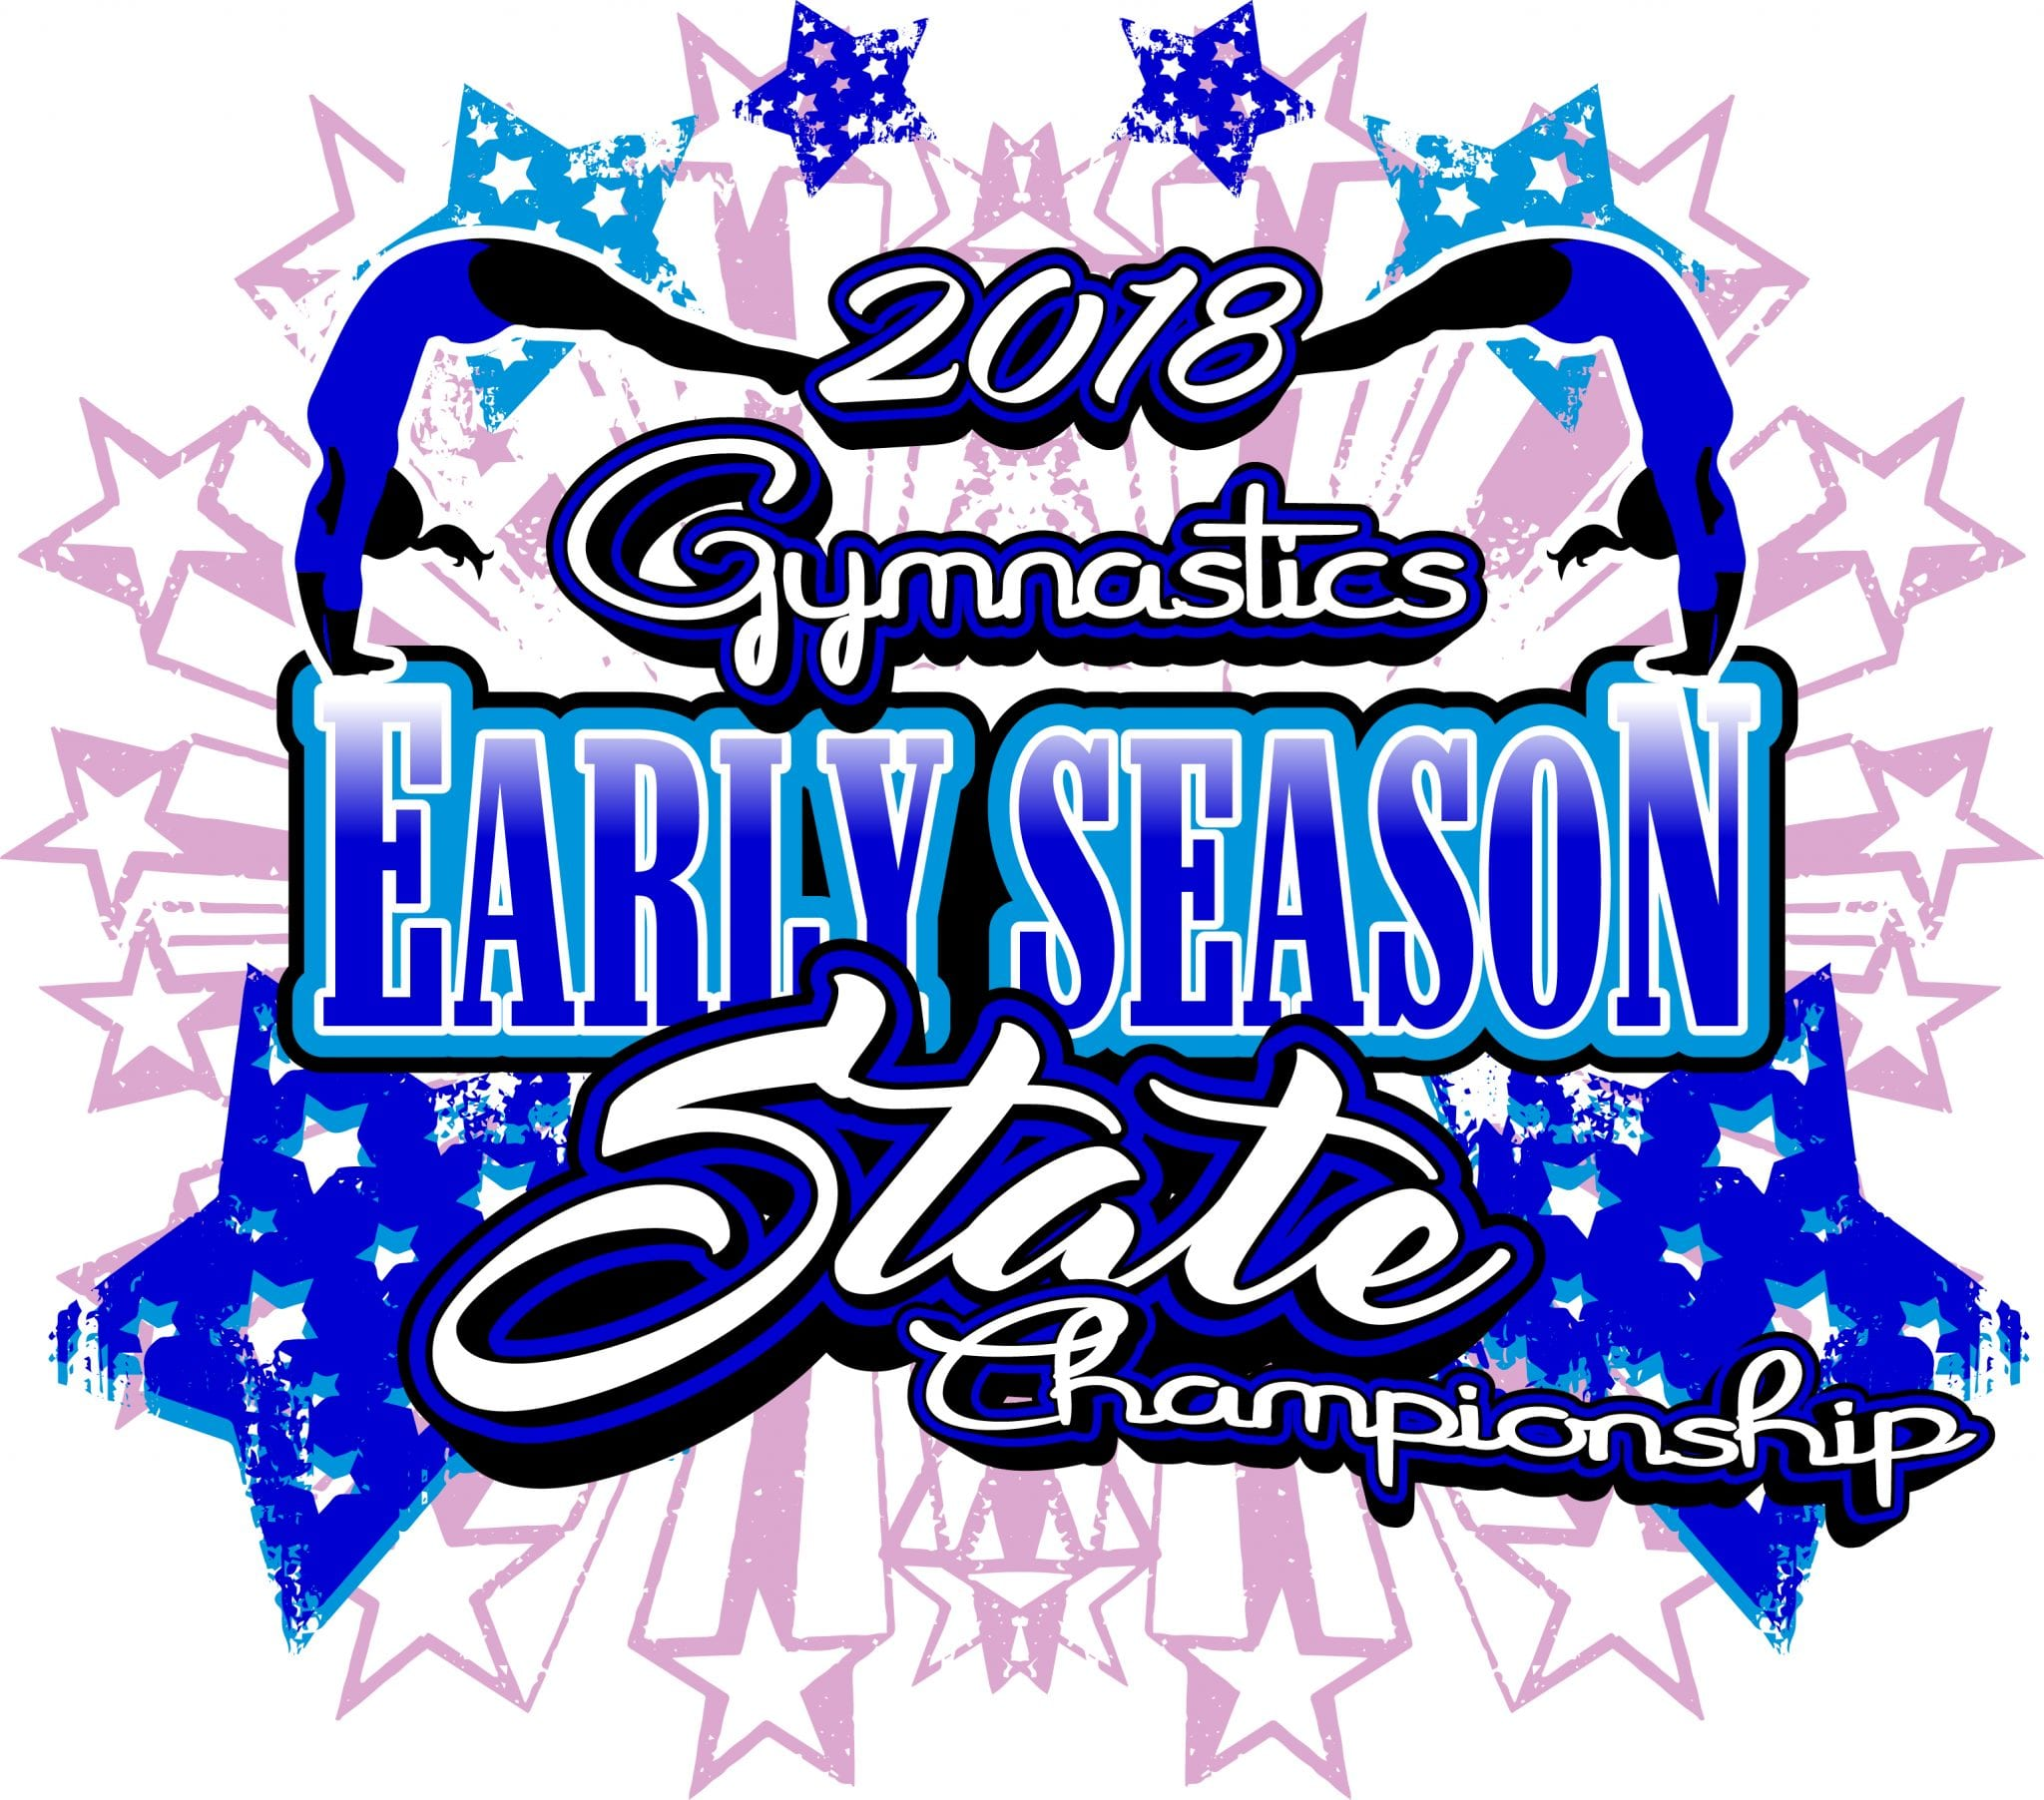 GYMNASTICS EARLY SEASON STATE CHAMPIONSHIP 2018 T-shirt vector logo design for print